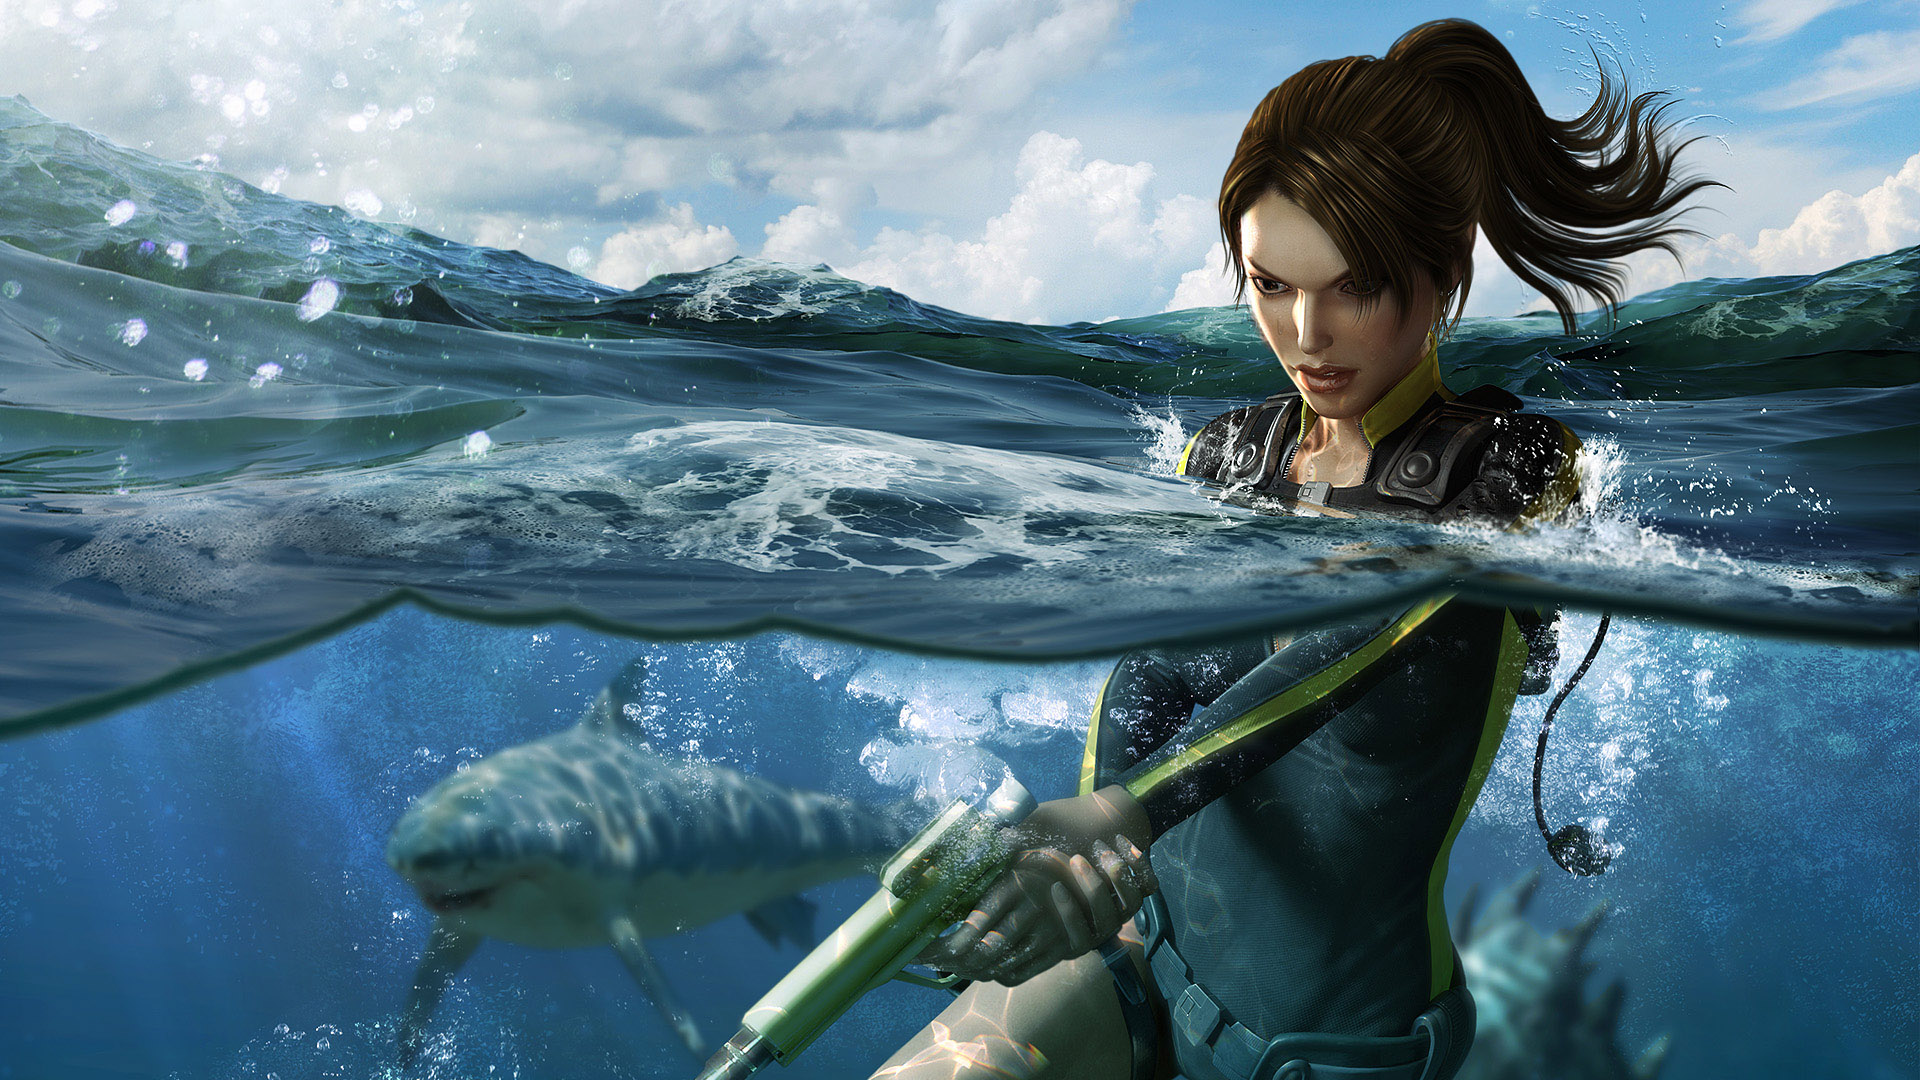 Girlish Wallpapers With Quotes Water Shooting Fantasy Girl